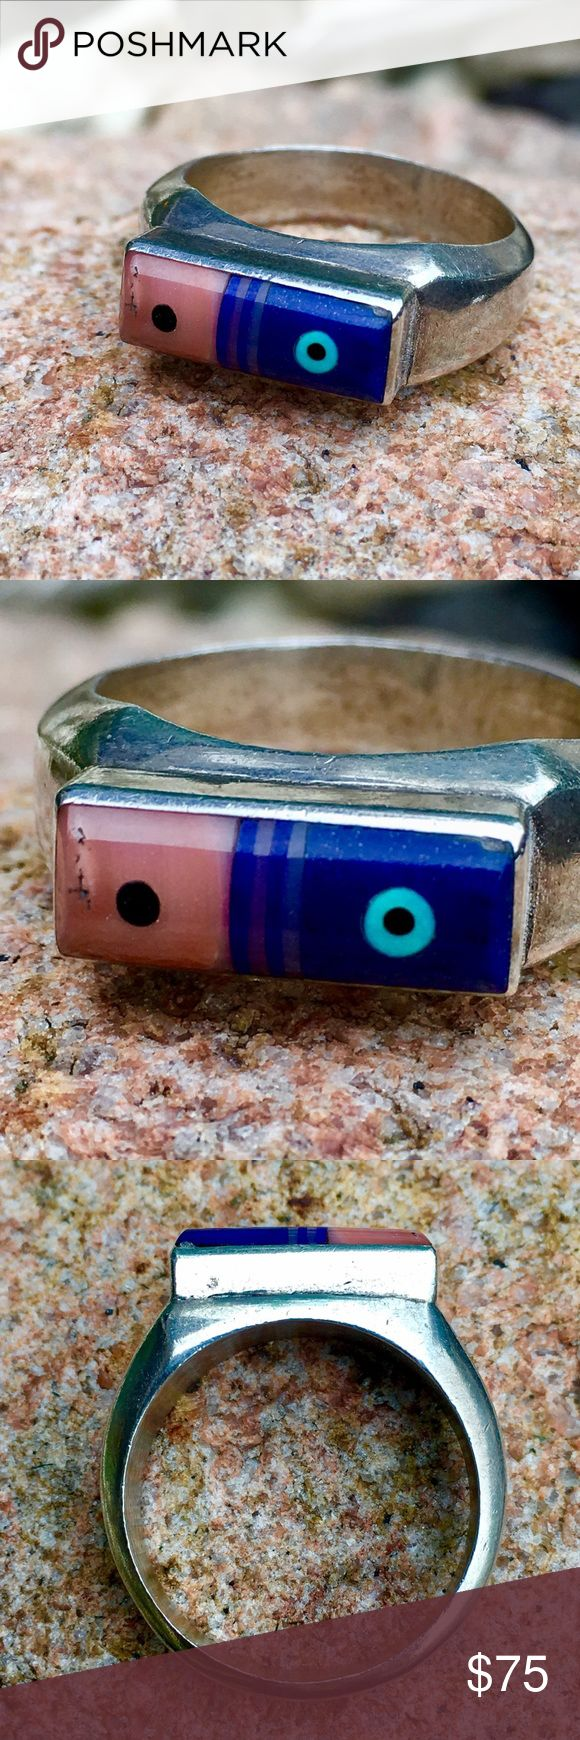 Vintage Silver Hand Cast Inlay Ring **I have No Records To Authenticate any Tribal Affiliation, any legitimate input would be welcome! Lapis, Pink Shell, Turquoise, Dots of Onyx or Jet, No Hallmarks, Ring Tests Positive for Sterling, all one Piece with no seams, Stones are rounded & set in semi-mount. ( ring in last photo is a separate listing and not included) 8.8g Jewelry Rings